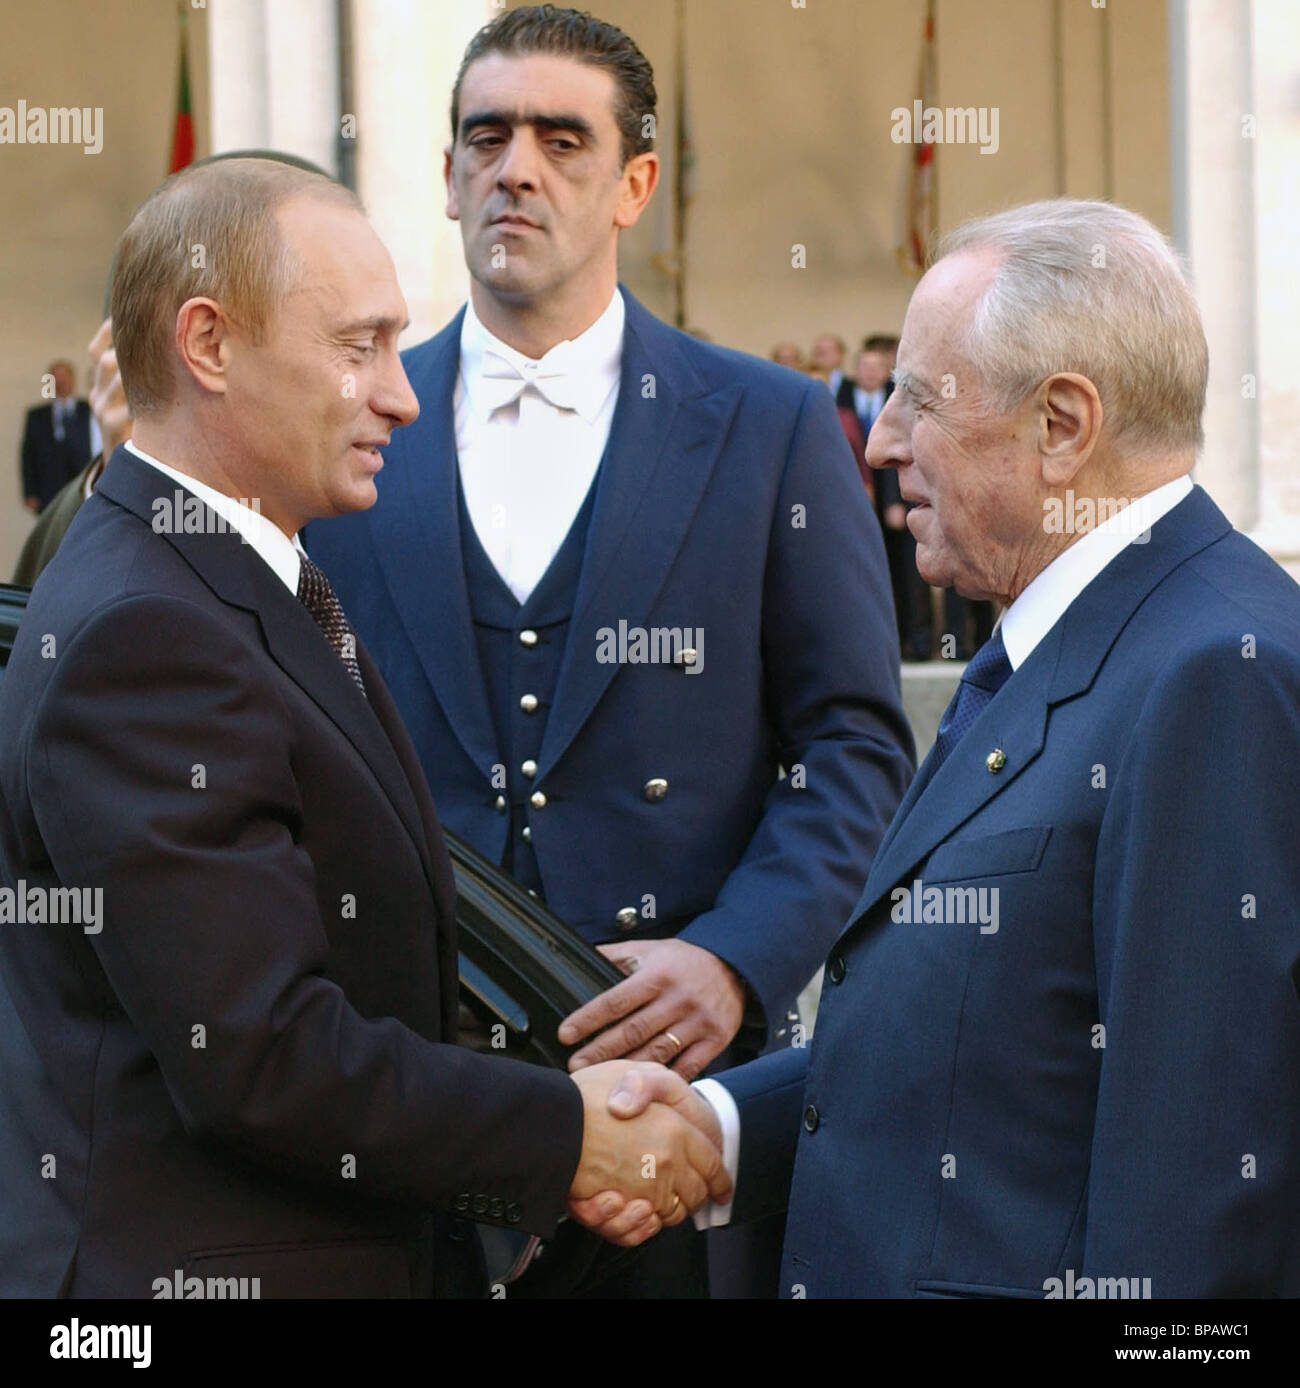 Meeting of Presidents of Russia and Italy - Stock Image